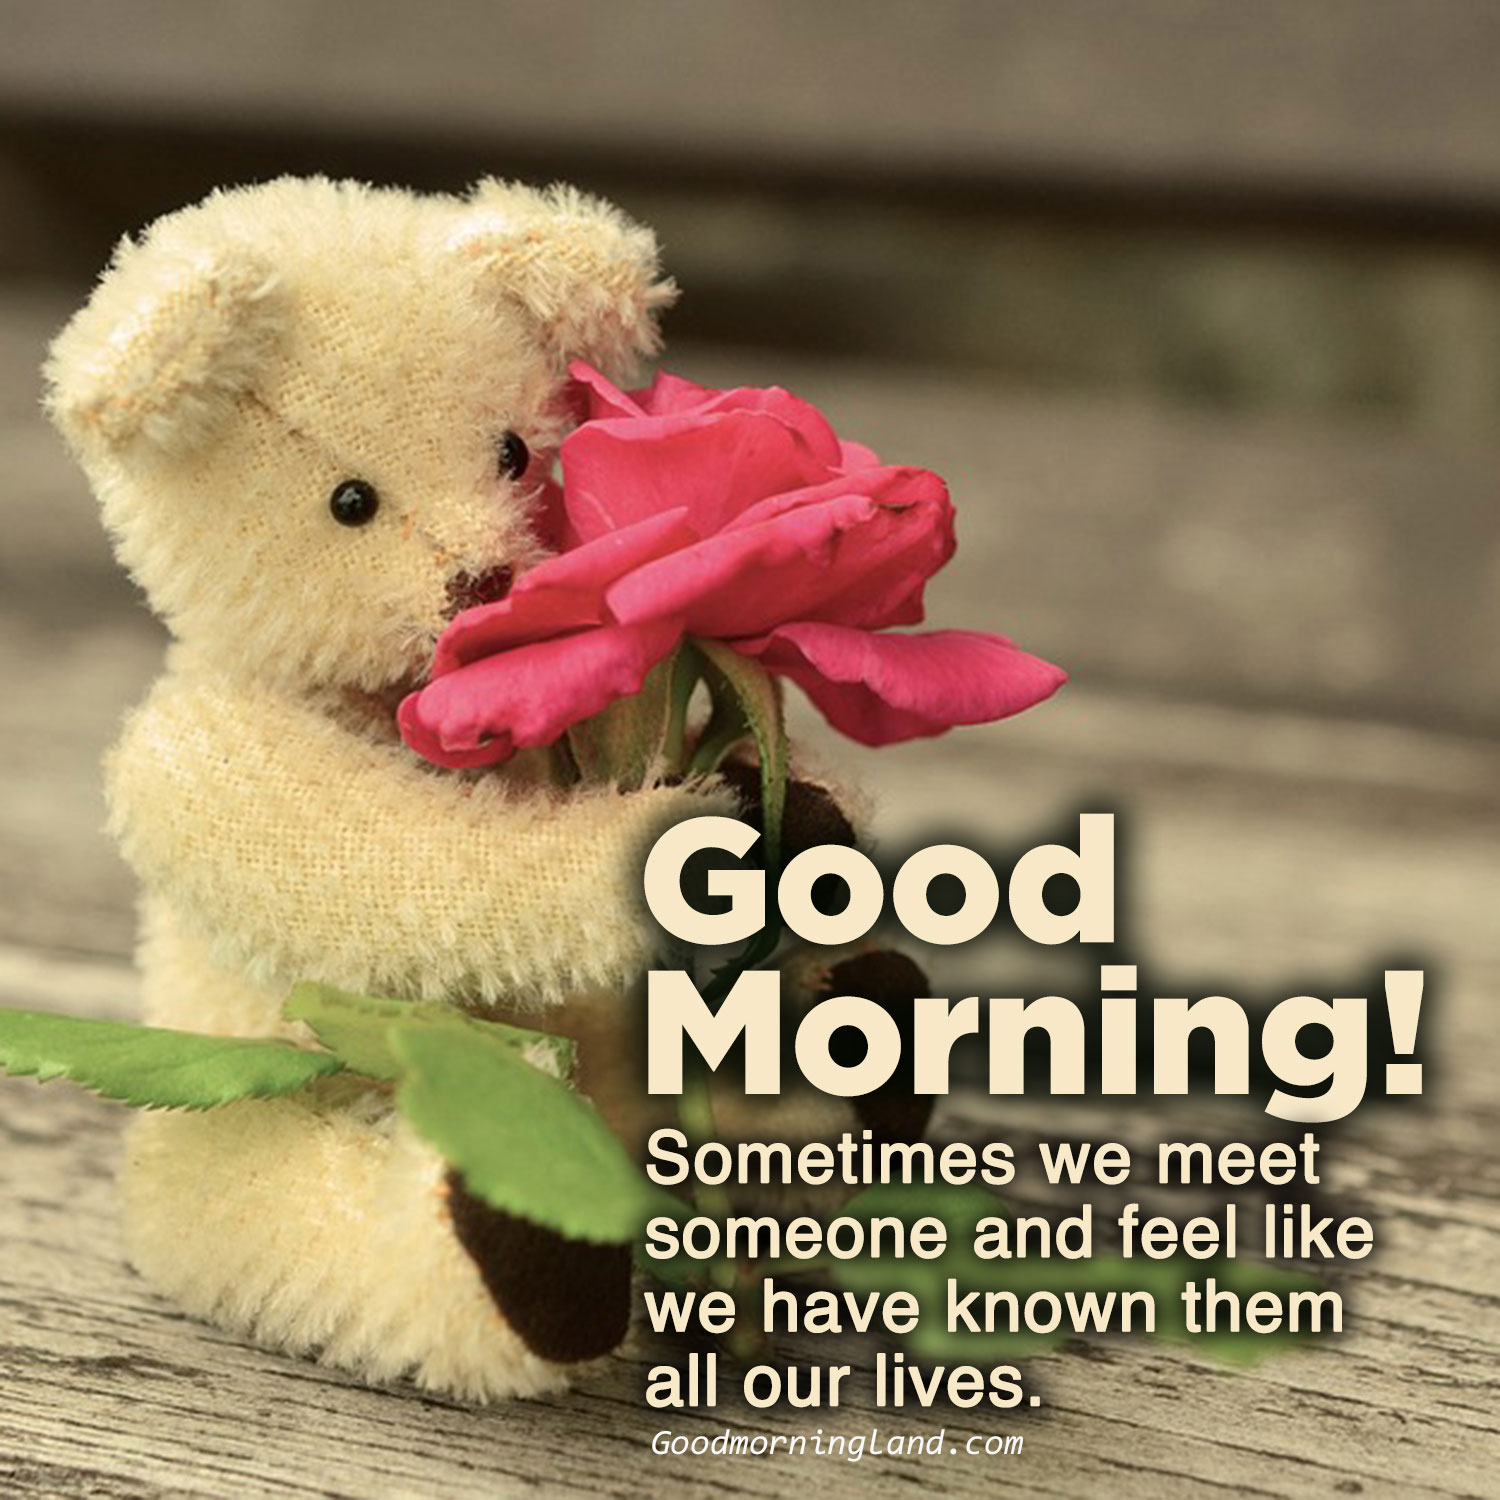 Top animated Good morning love quotes - Good Morning Images